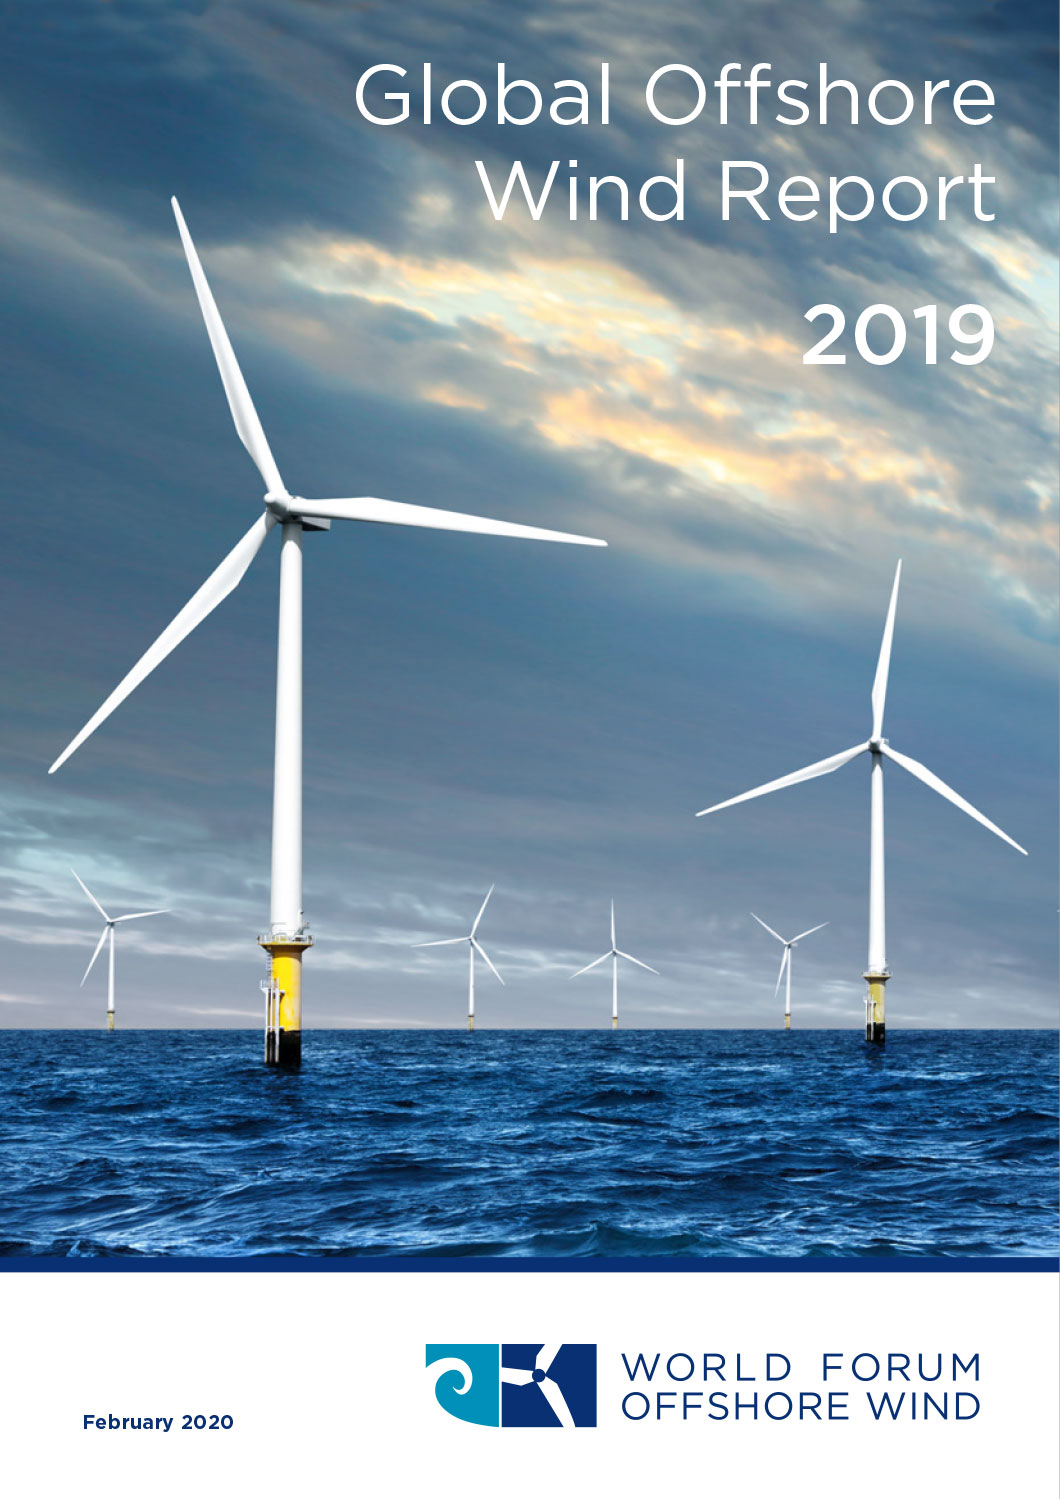 WFO – Global Offshore Wind Report 2019